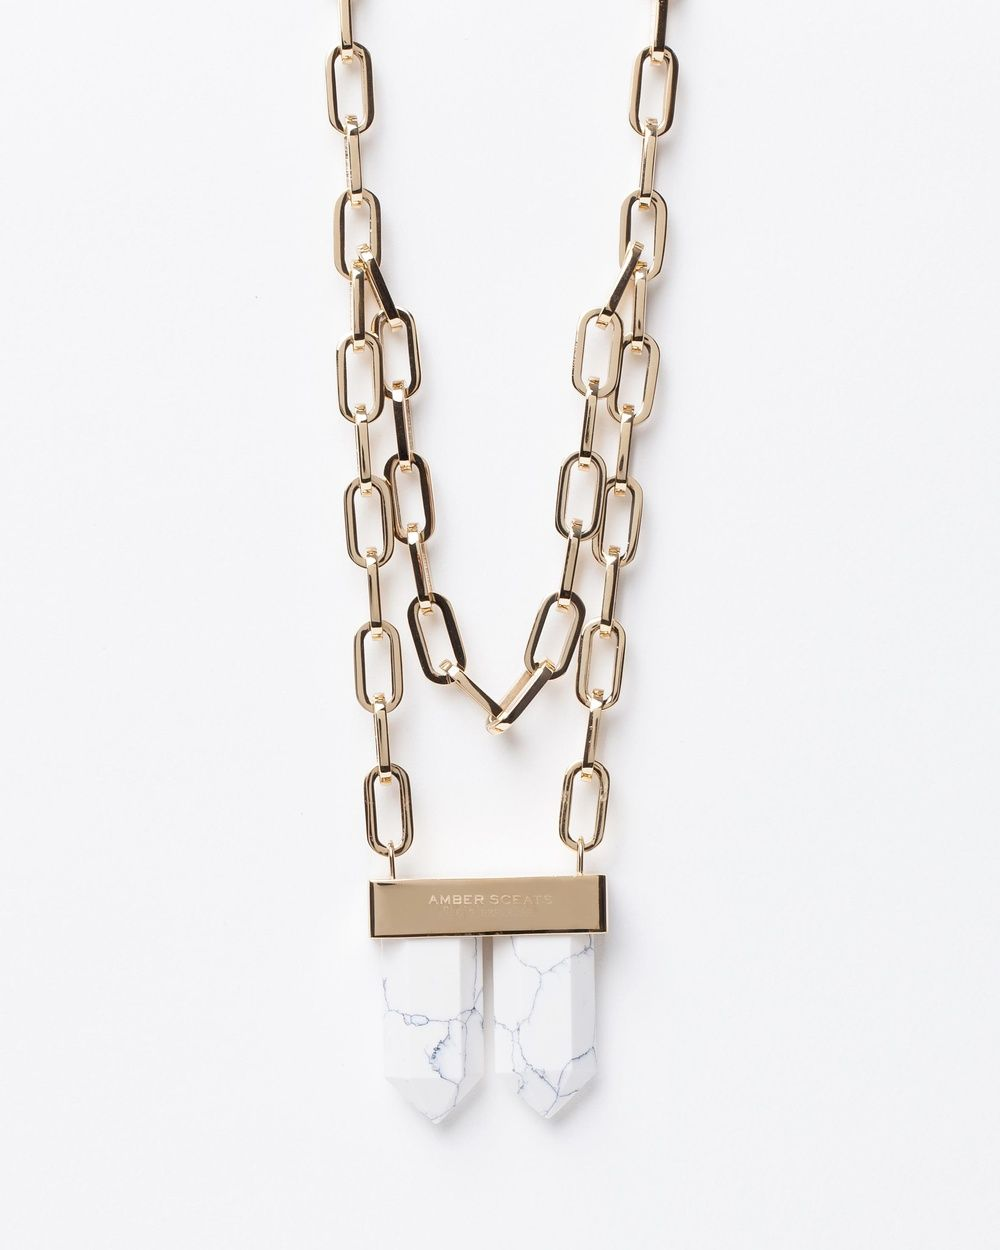 Santanna Necklace by Amber Sceats. Tap image to shop at THE ICONIC.